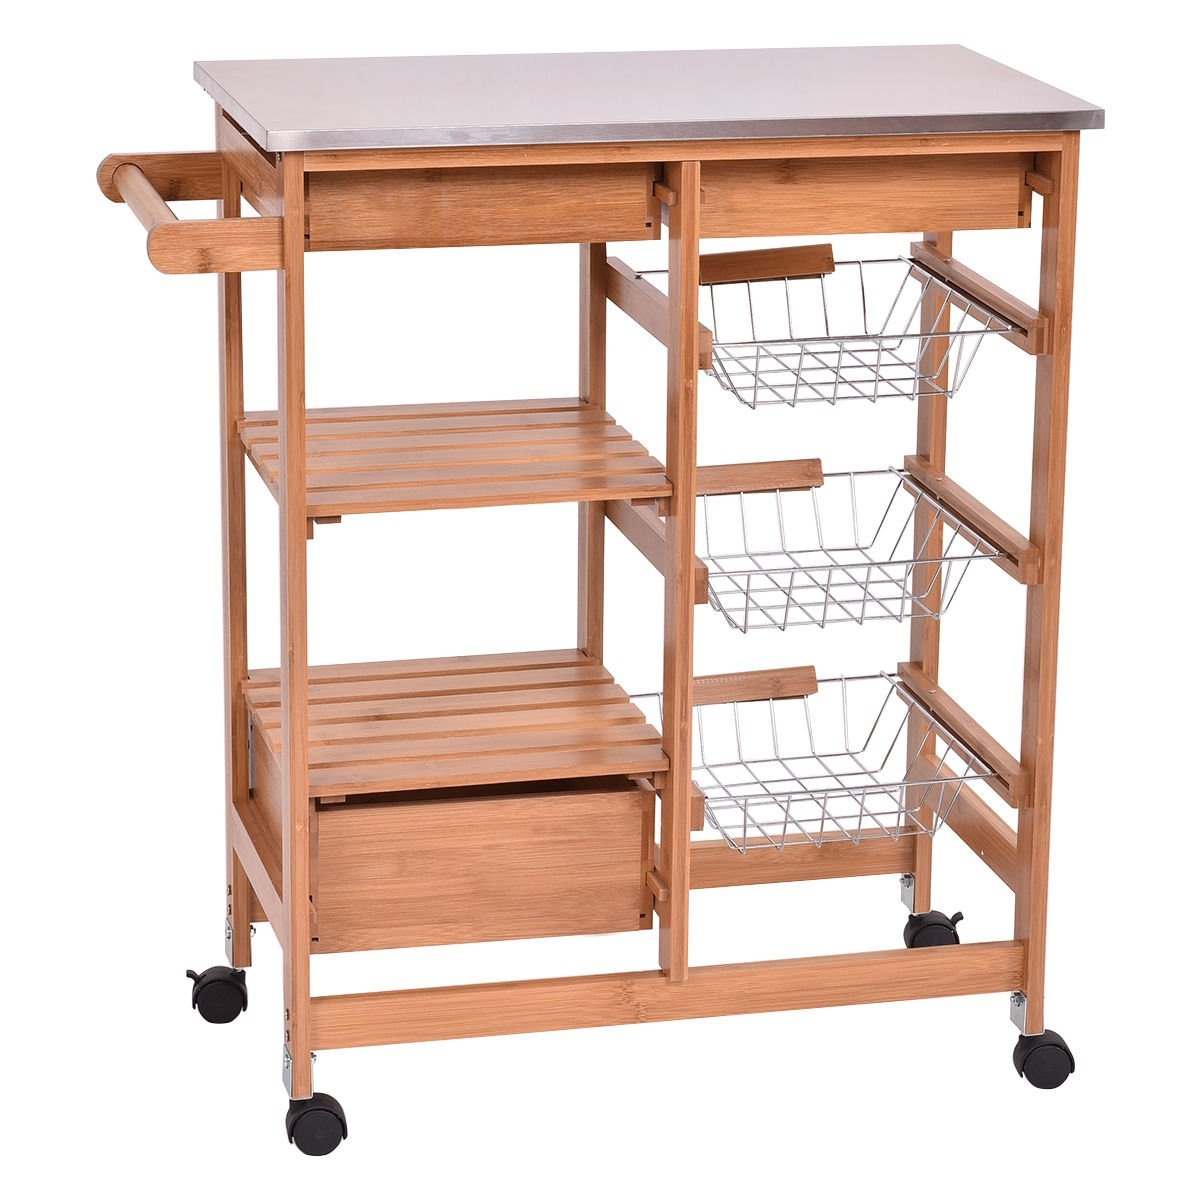 superb Amazon Kitchen Island Cart #7: Giantex Bamboo Rolling Kitchen Island.